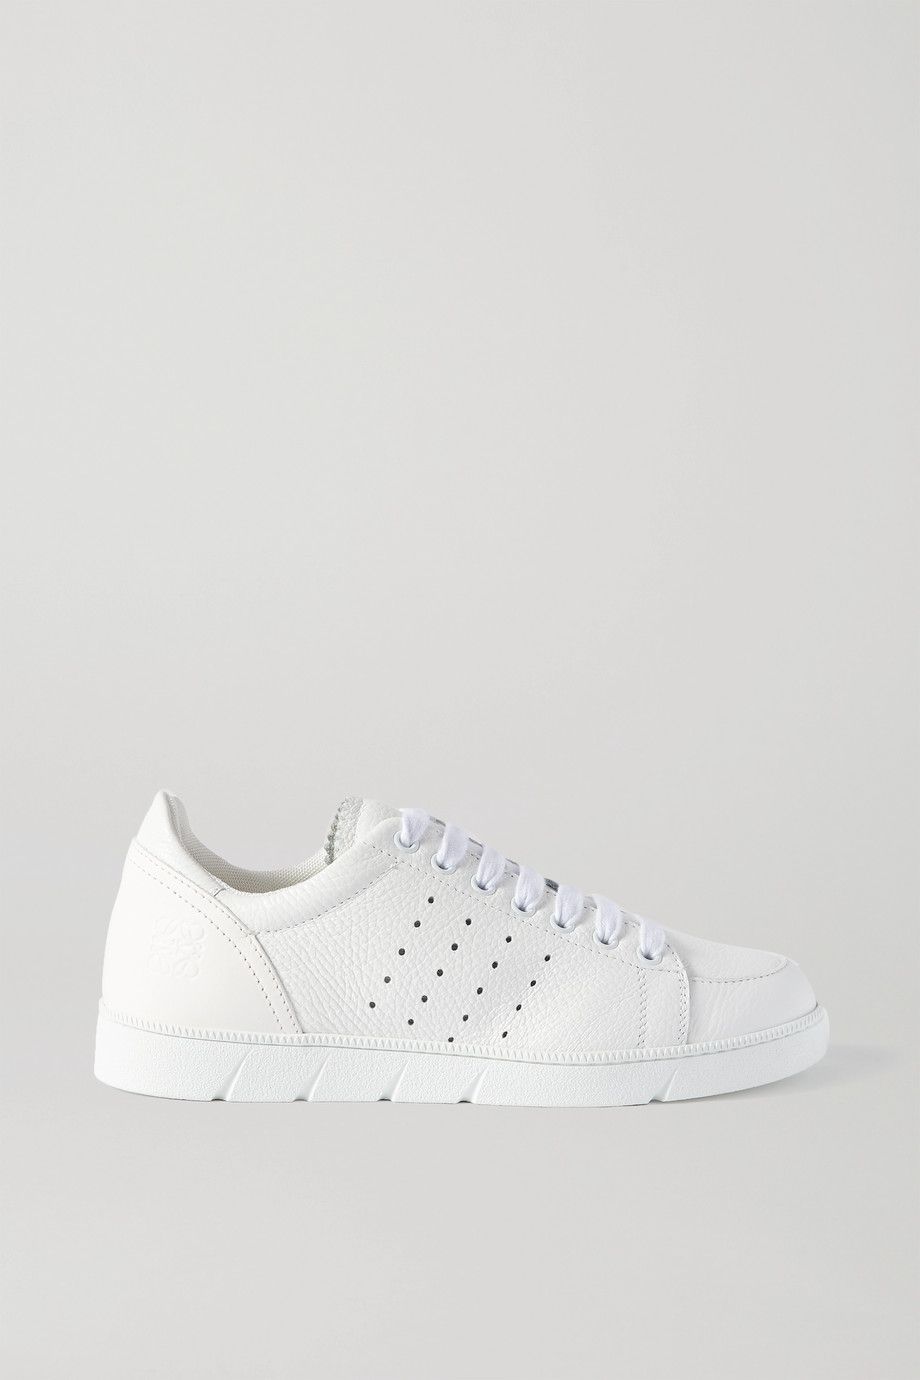 Loewe Textured-leather sneakers